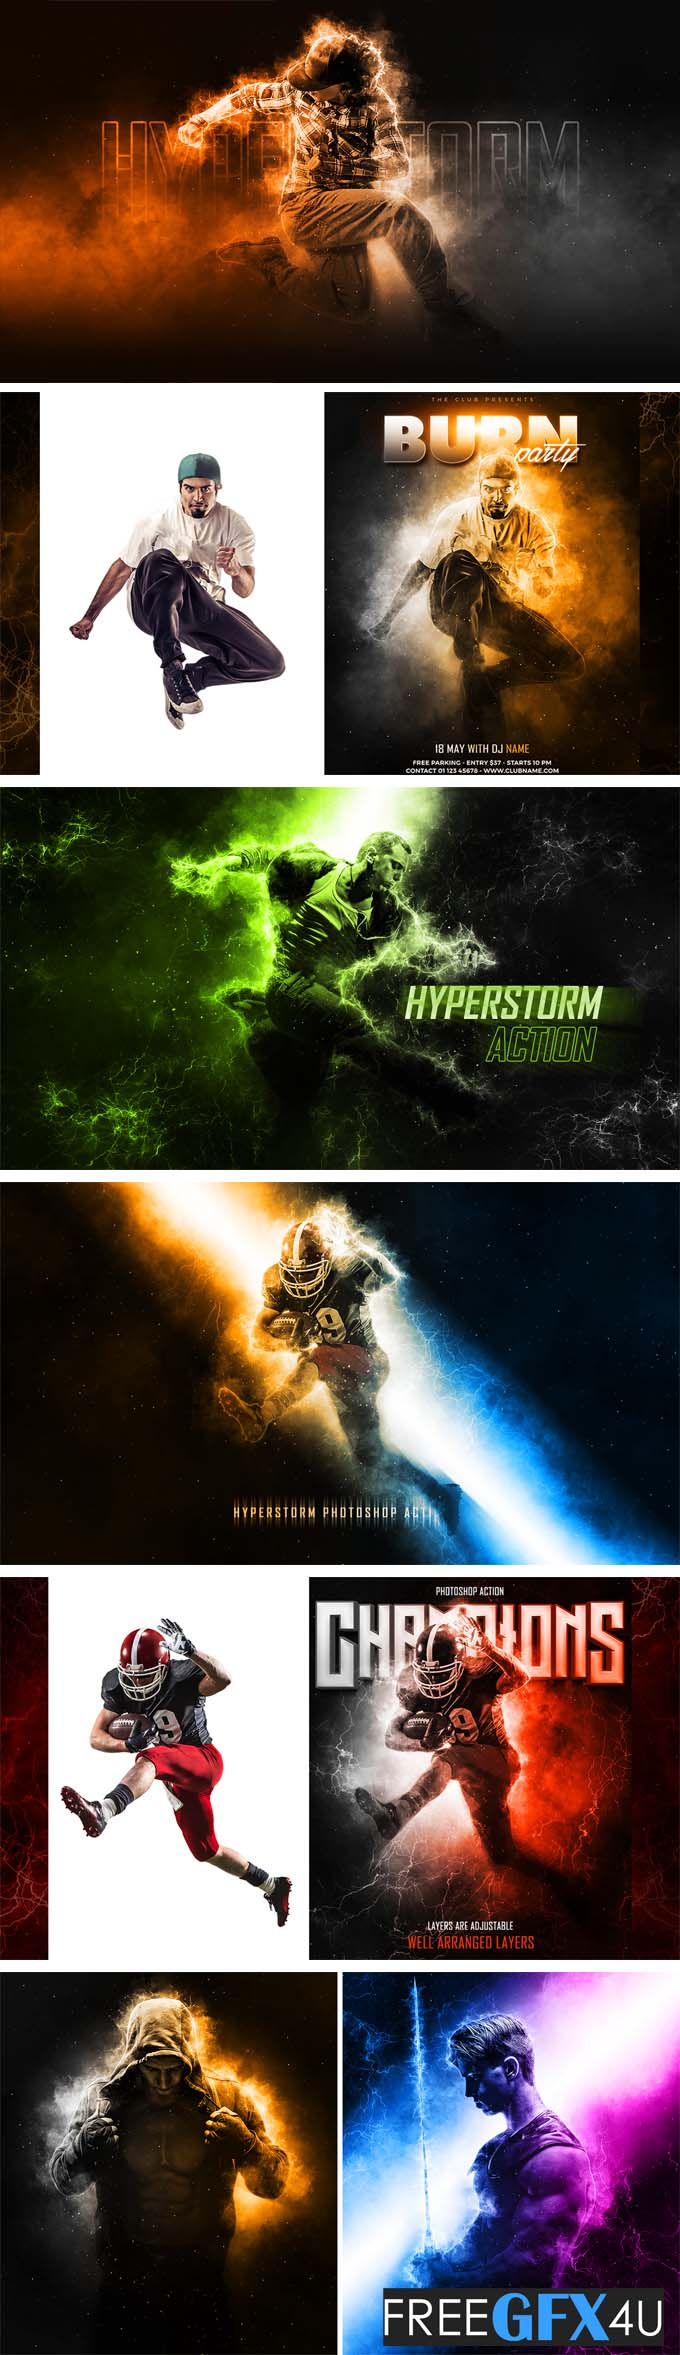 Graphicriver - Hyperstorm Photoshop Action